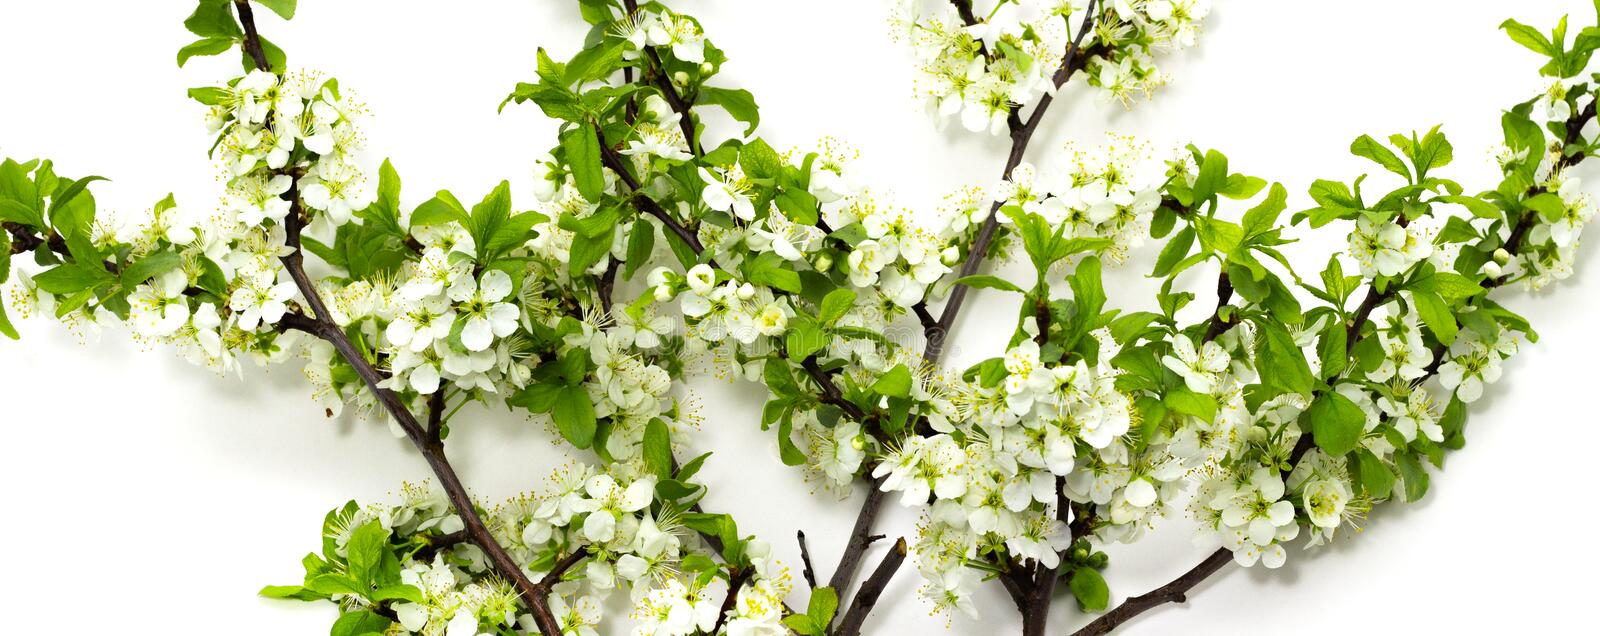 Flowering plum branches on a white background spring flowering of fruit trees royalty free stock photography